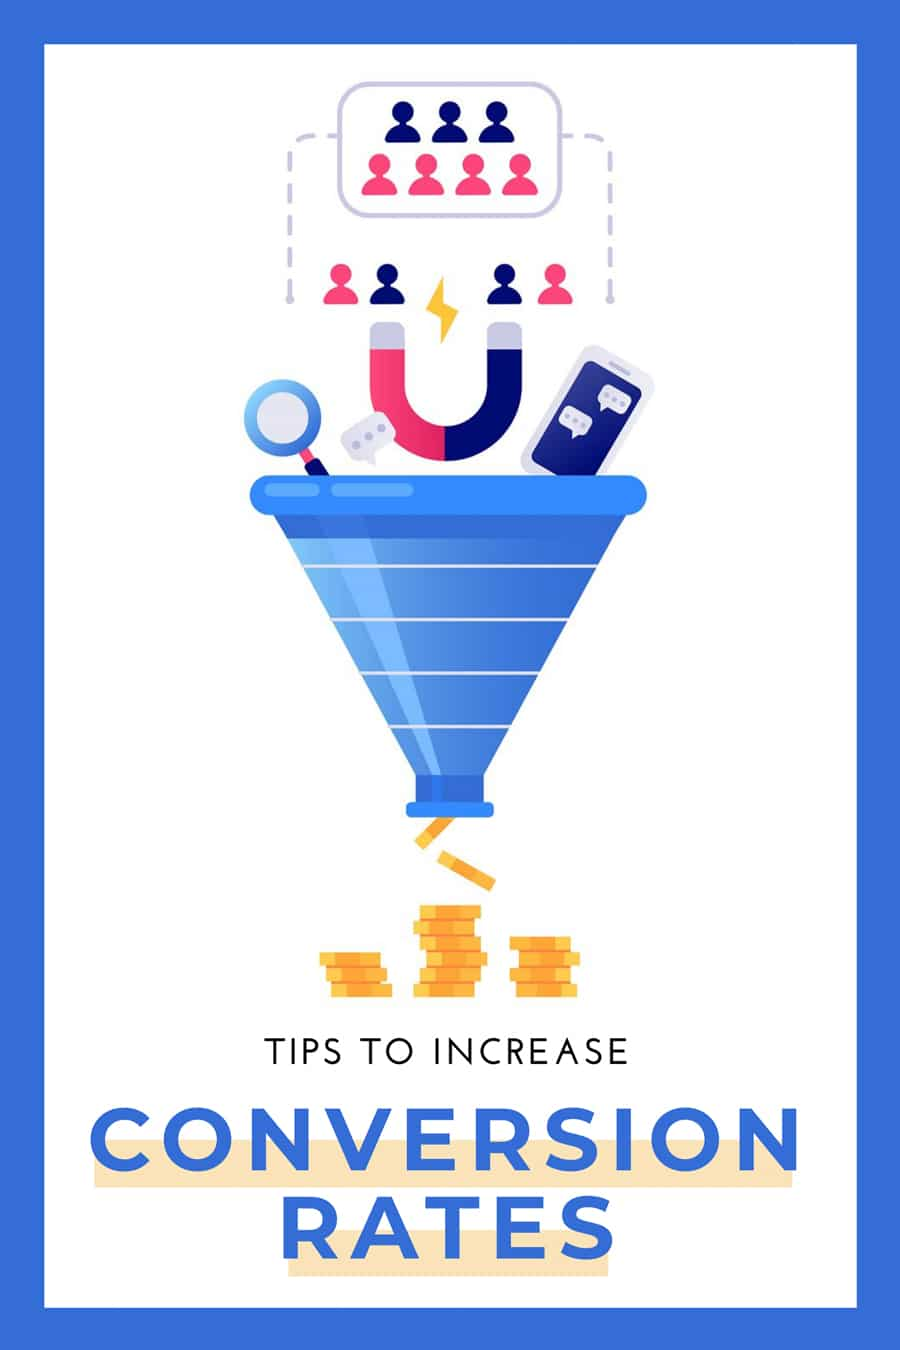 Tips to increase conversion rates